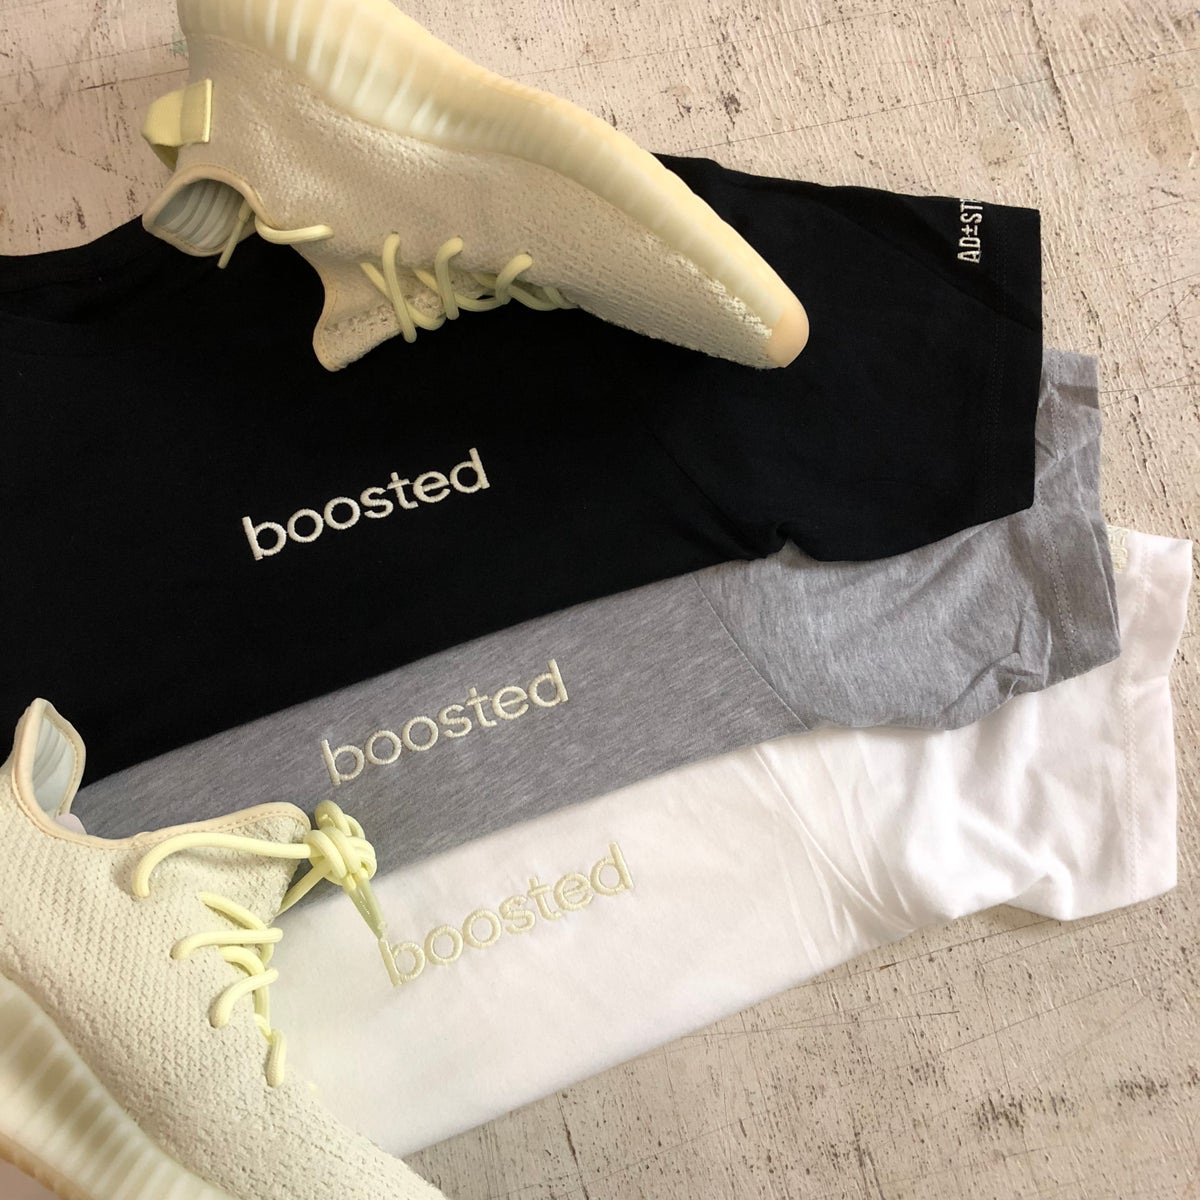 Image of BOOSTED EMBROIDERY (BUTTER) LONG BODY T-SHIRT W/ SCALLOPED BOTTOM HEM